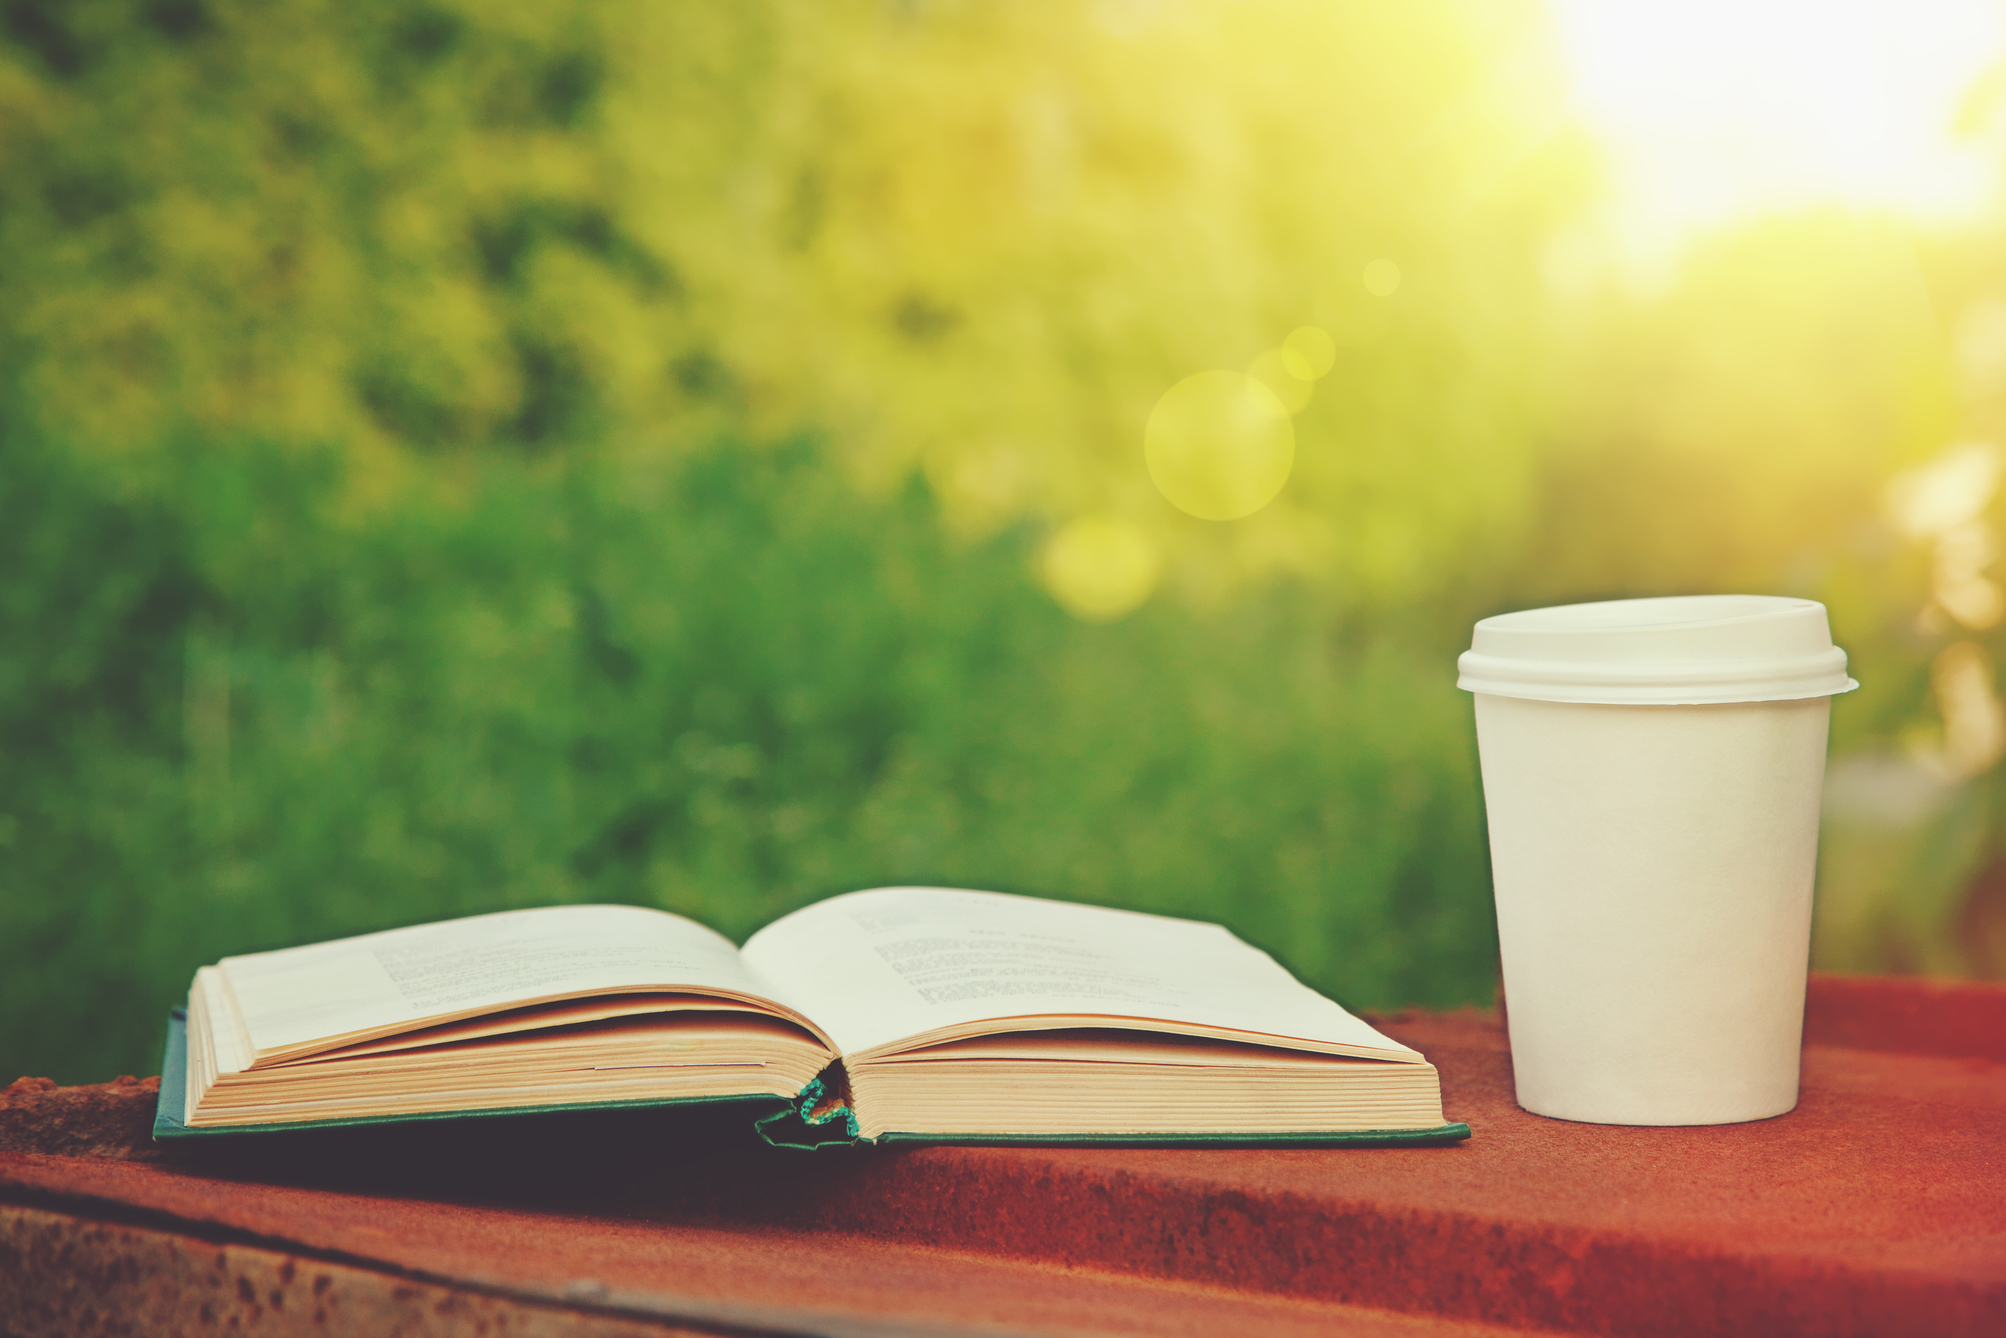 Cup of coffee and book in the summer sunlight